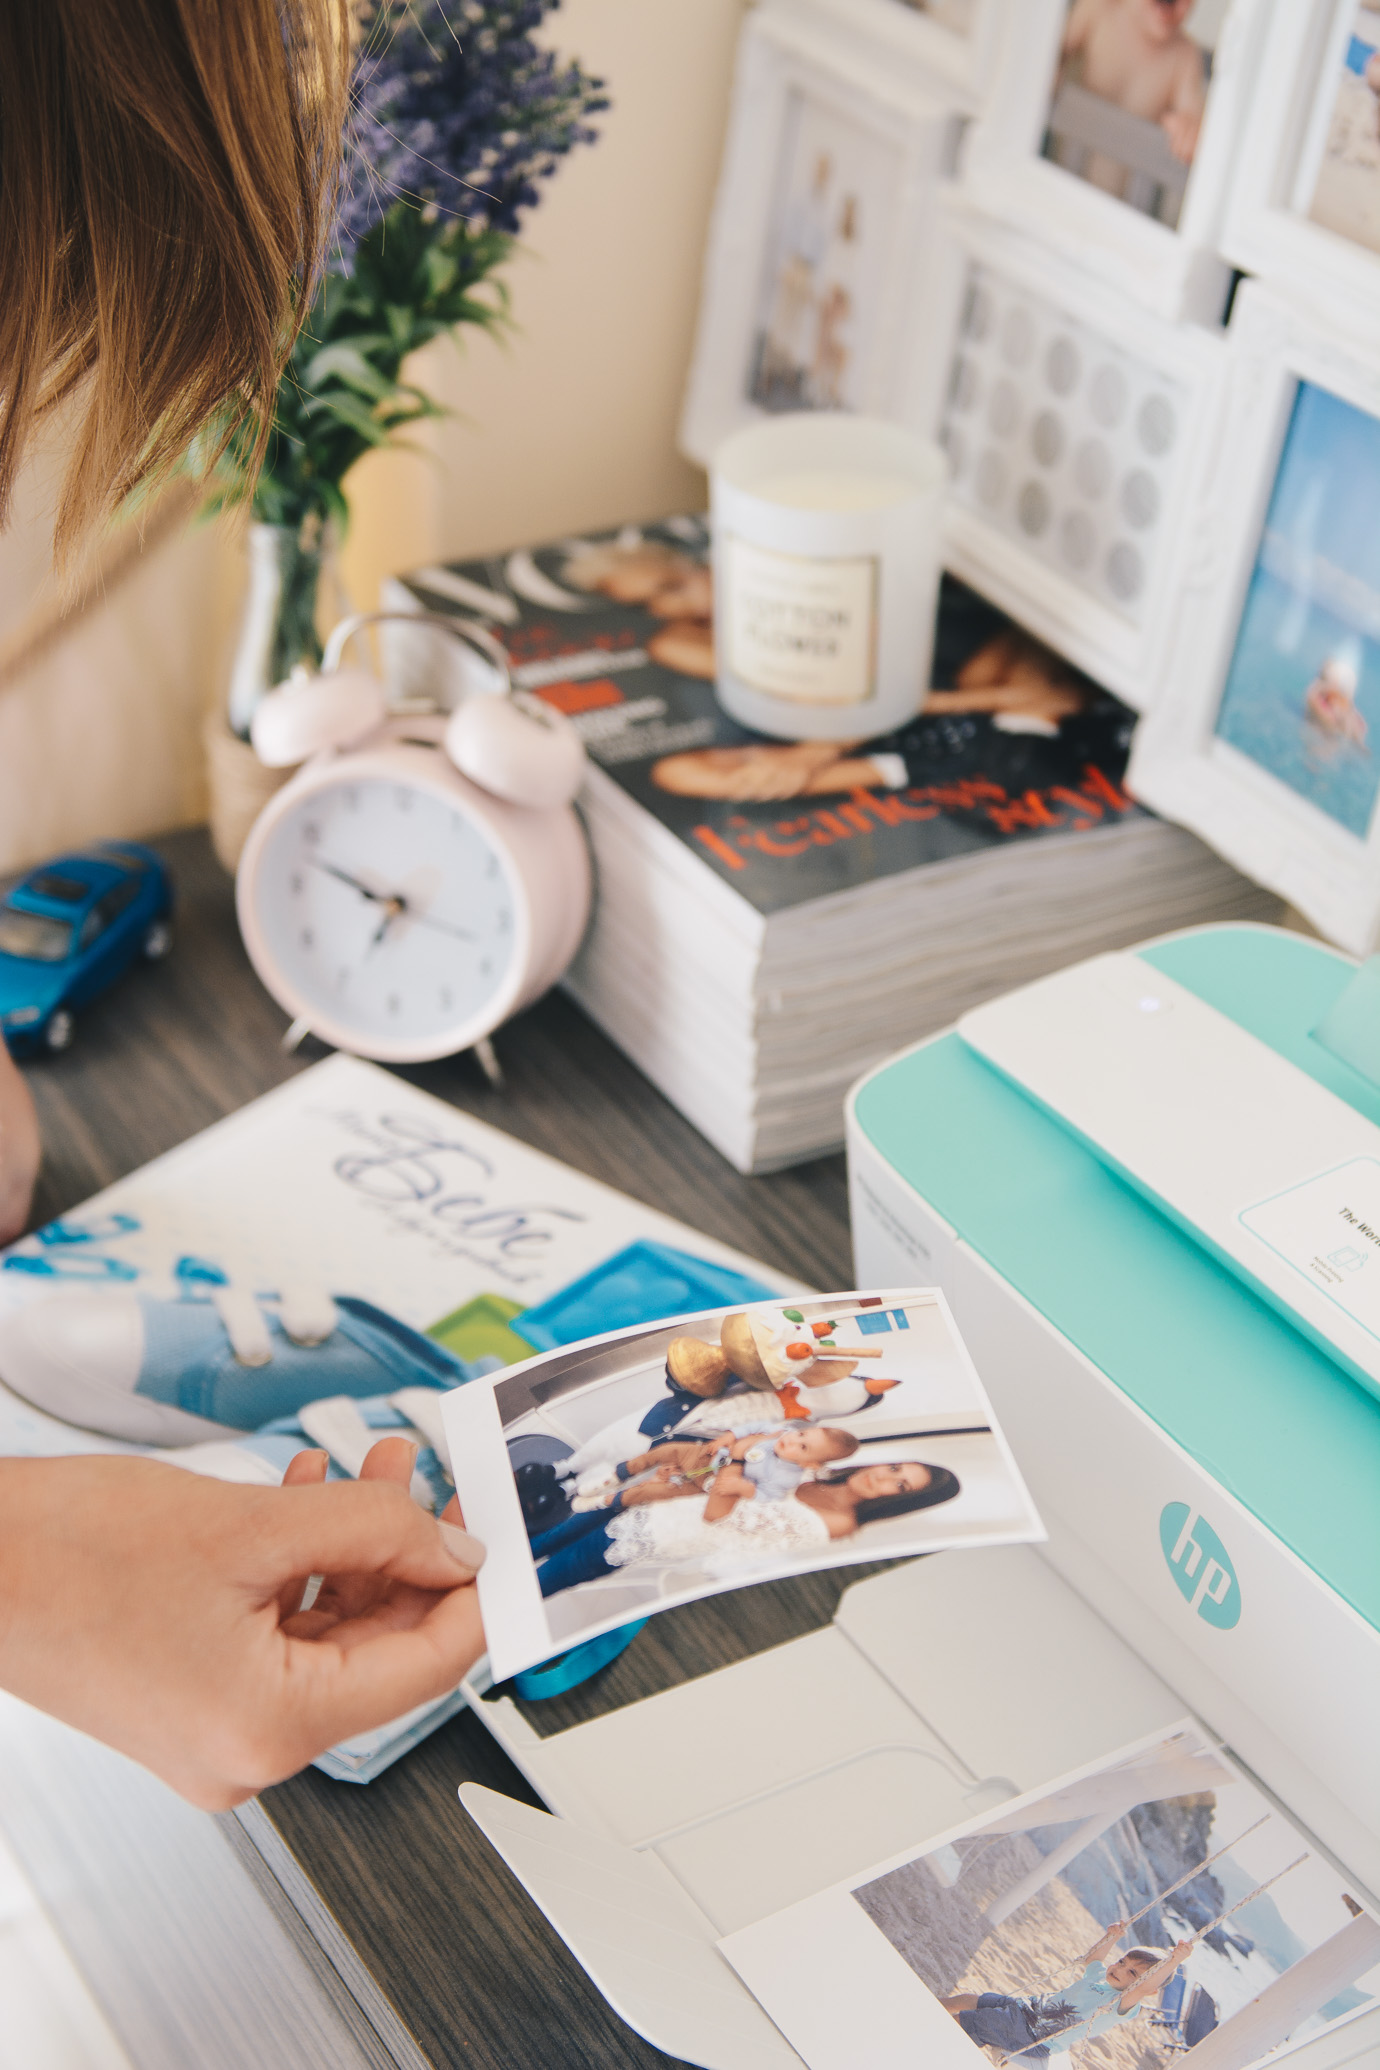 Printing photos with HP Deskjet